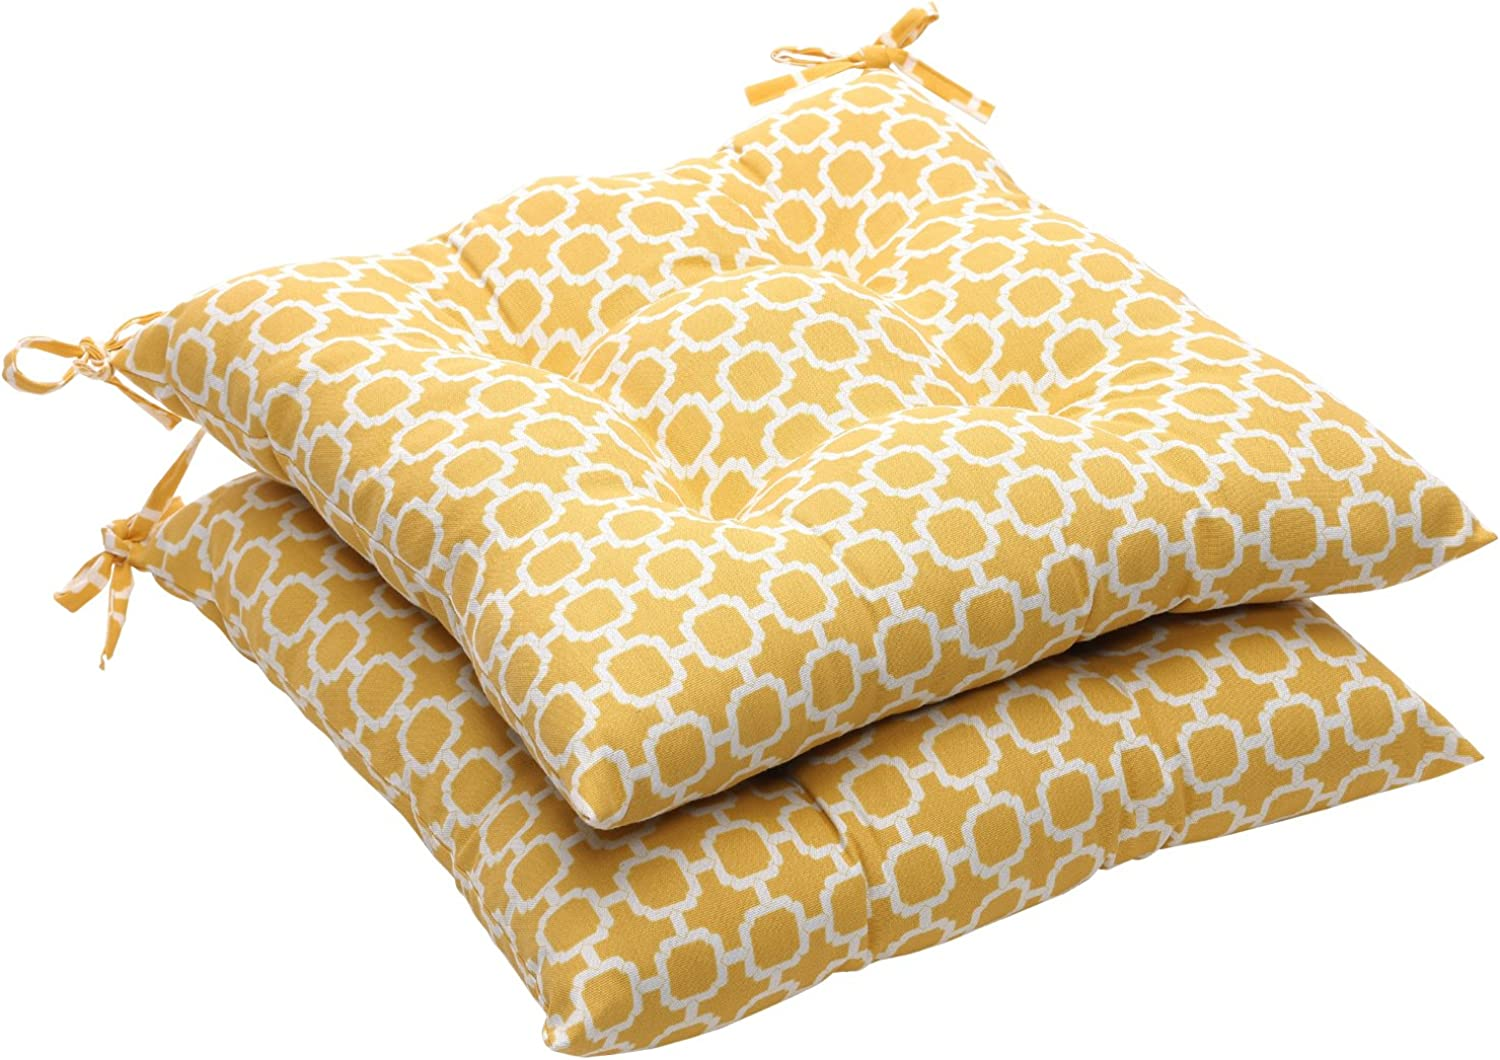 Pillow Perfect Indoor Outdoor Yellow White Geometric Tufted Seat Cushion, 2-Pack